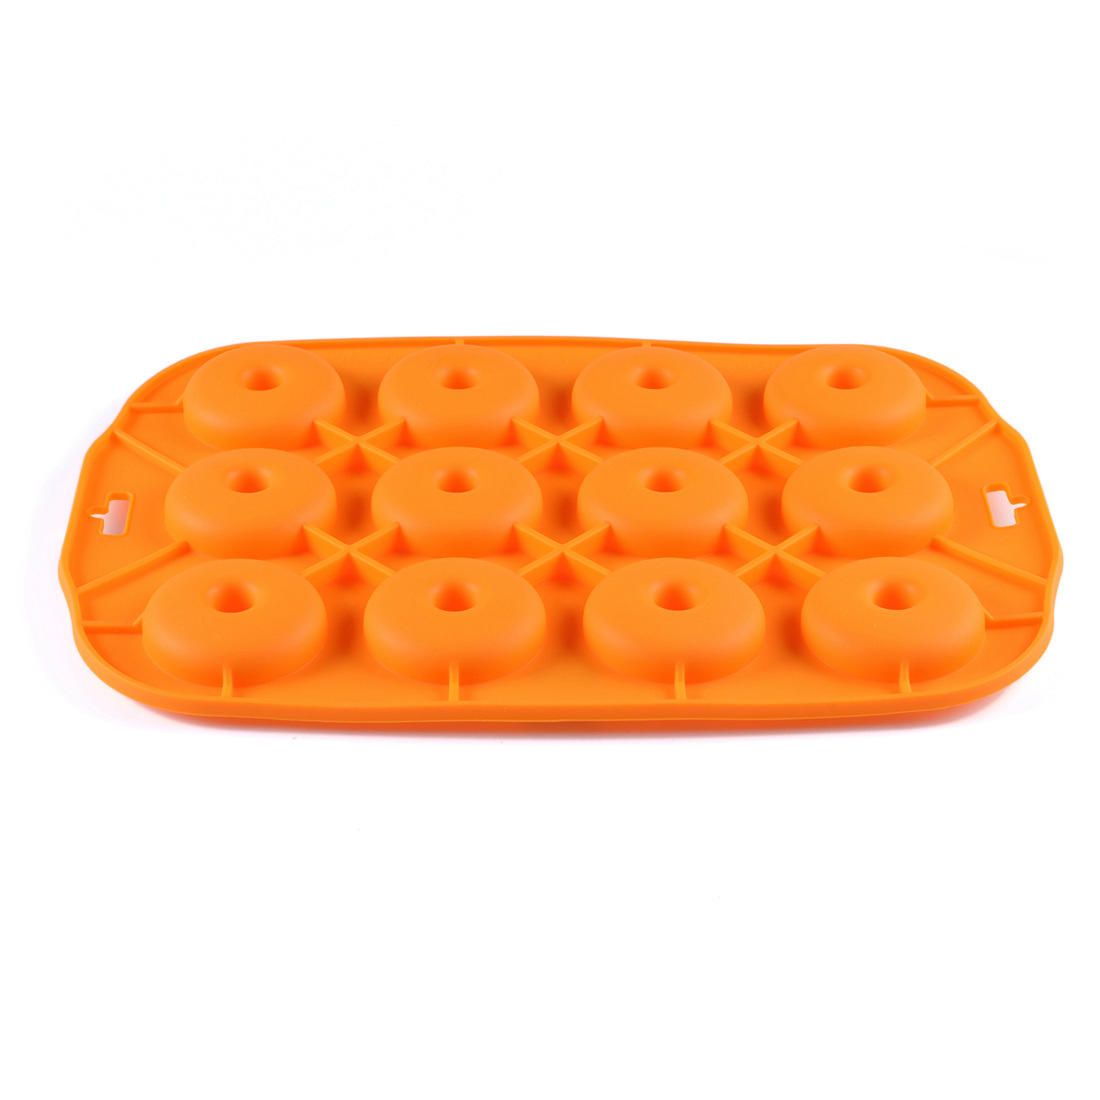 High-quality Silicone baking mold Dongguan suppliers for kids